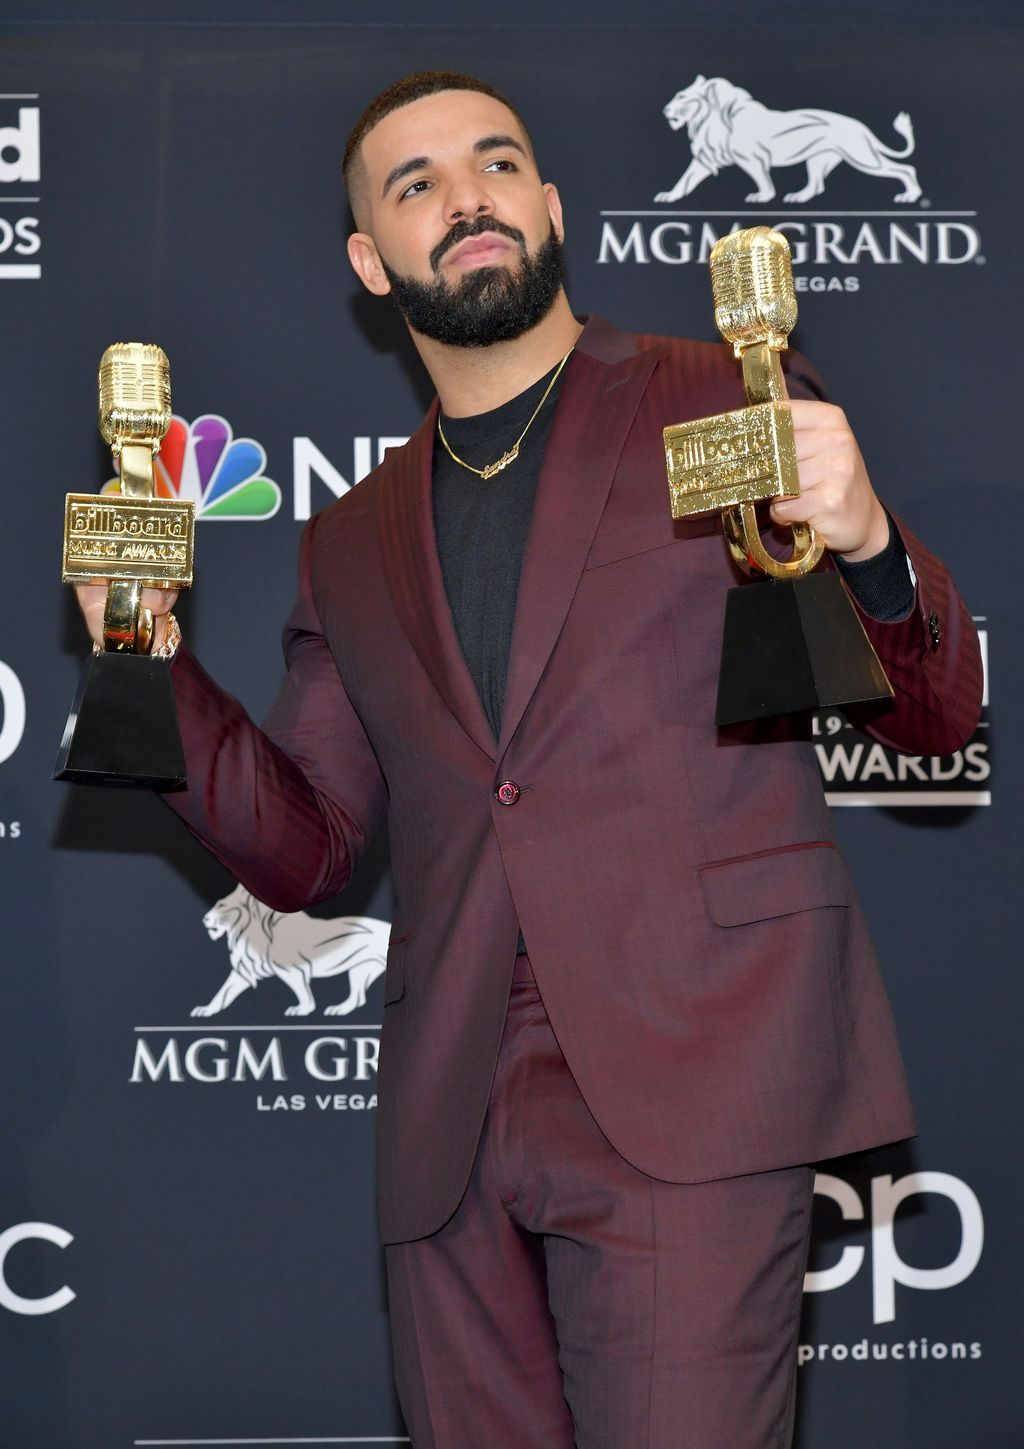 "LAS VEGAS, NEVADA - MAY 01: Drake poses with the awards for Top Artist, Top Male Artist, Top Billboard 200 Album for ""Scorpion"", Top Billboard 200 Artist, Top Hot 100 Artist, Top Streaming Songs Artist, Top Song Sales Artist, Top Rap Artist, Top Rap Male Artist in the press room during the 2019 Billboard Music Awards at MGM Grand Garden Arena on May 01, 2019 in Las Vegas, Nevada. (Photo by Amy Sussman/Getty Images for dcp)"